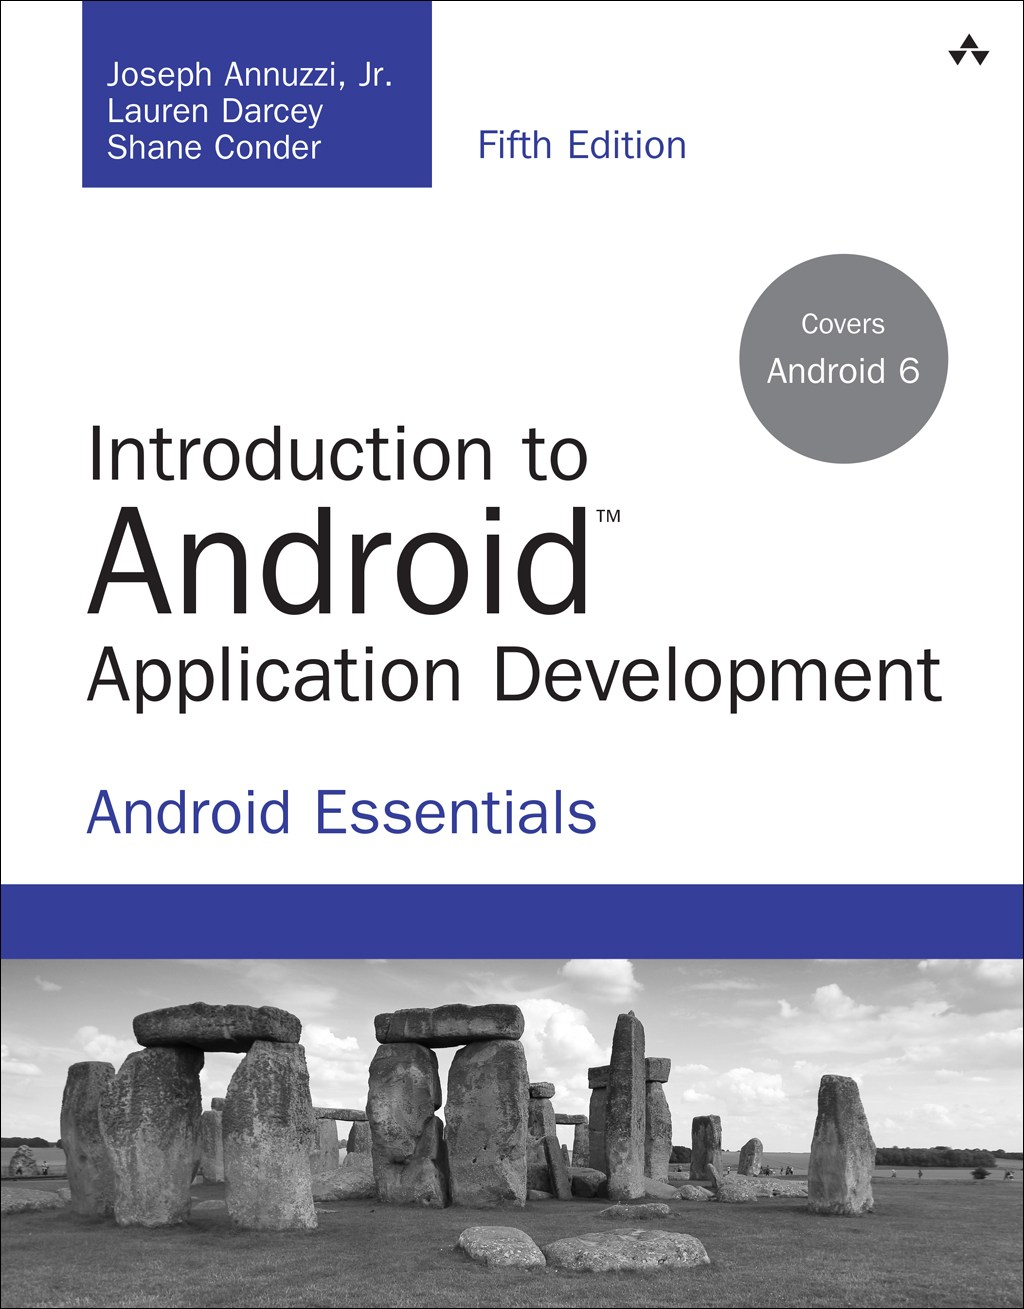 Introduction to Android Application Development: Android Essentials, 5th Edition